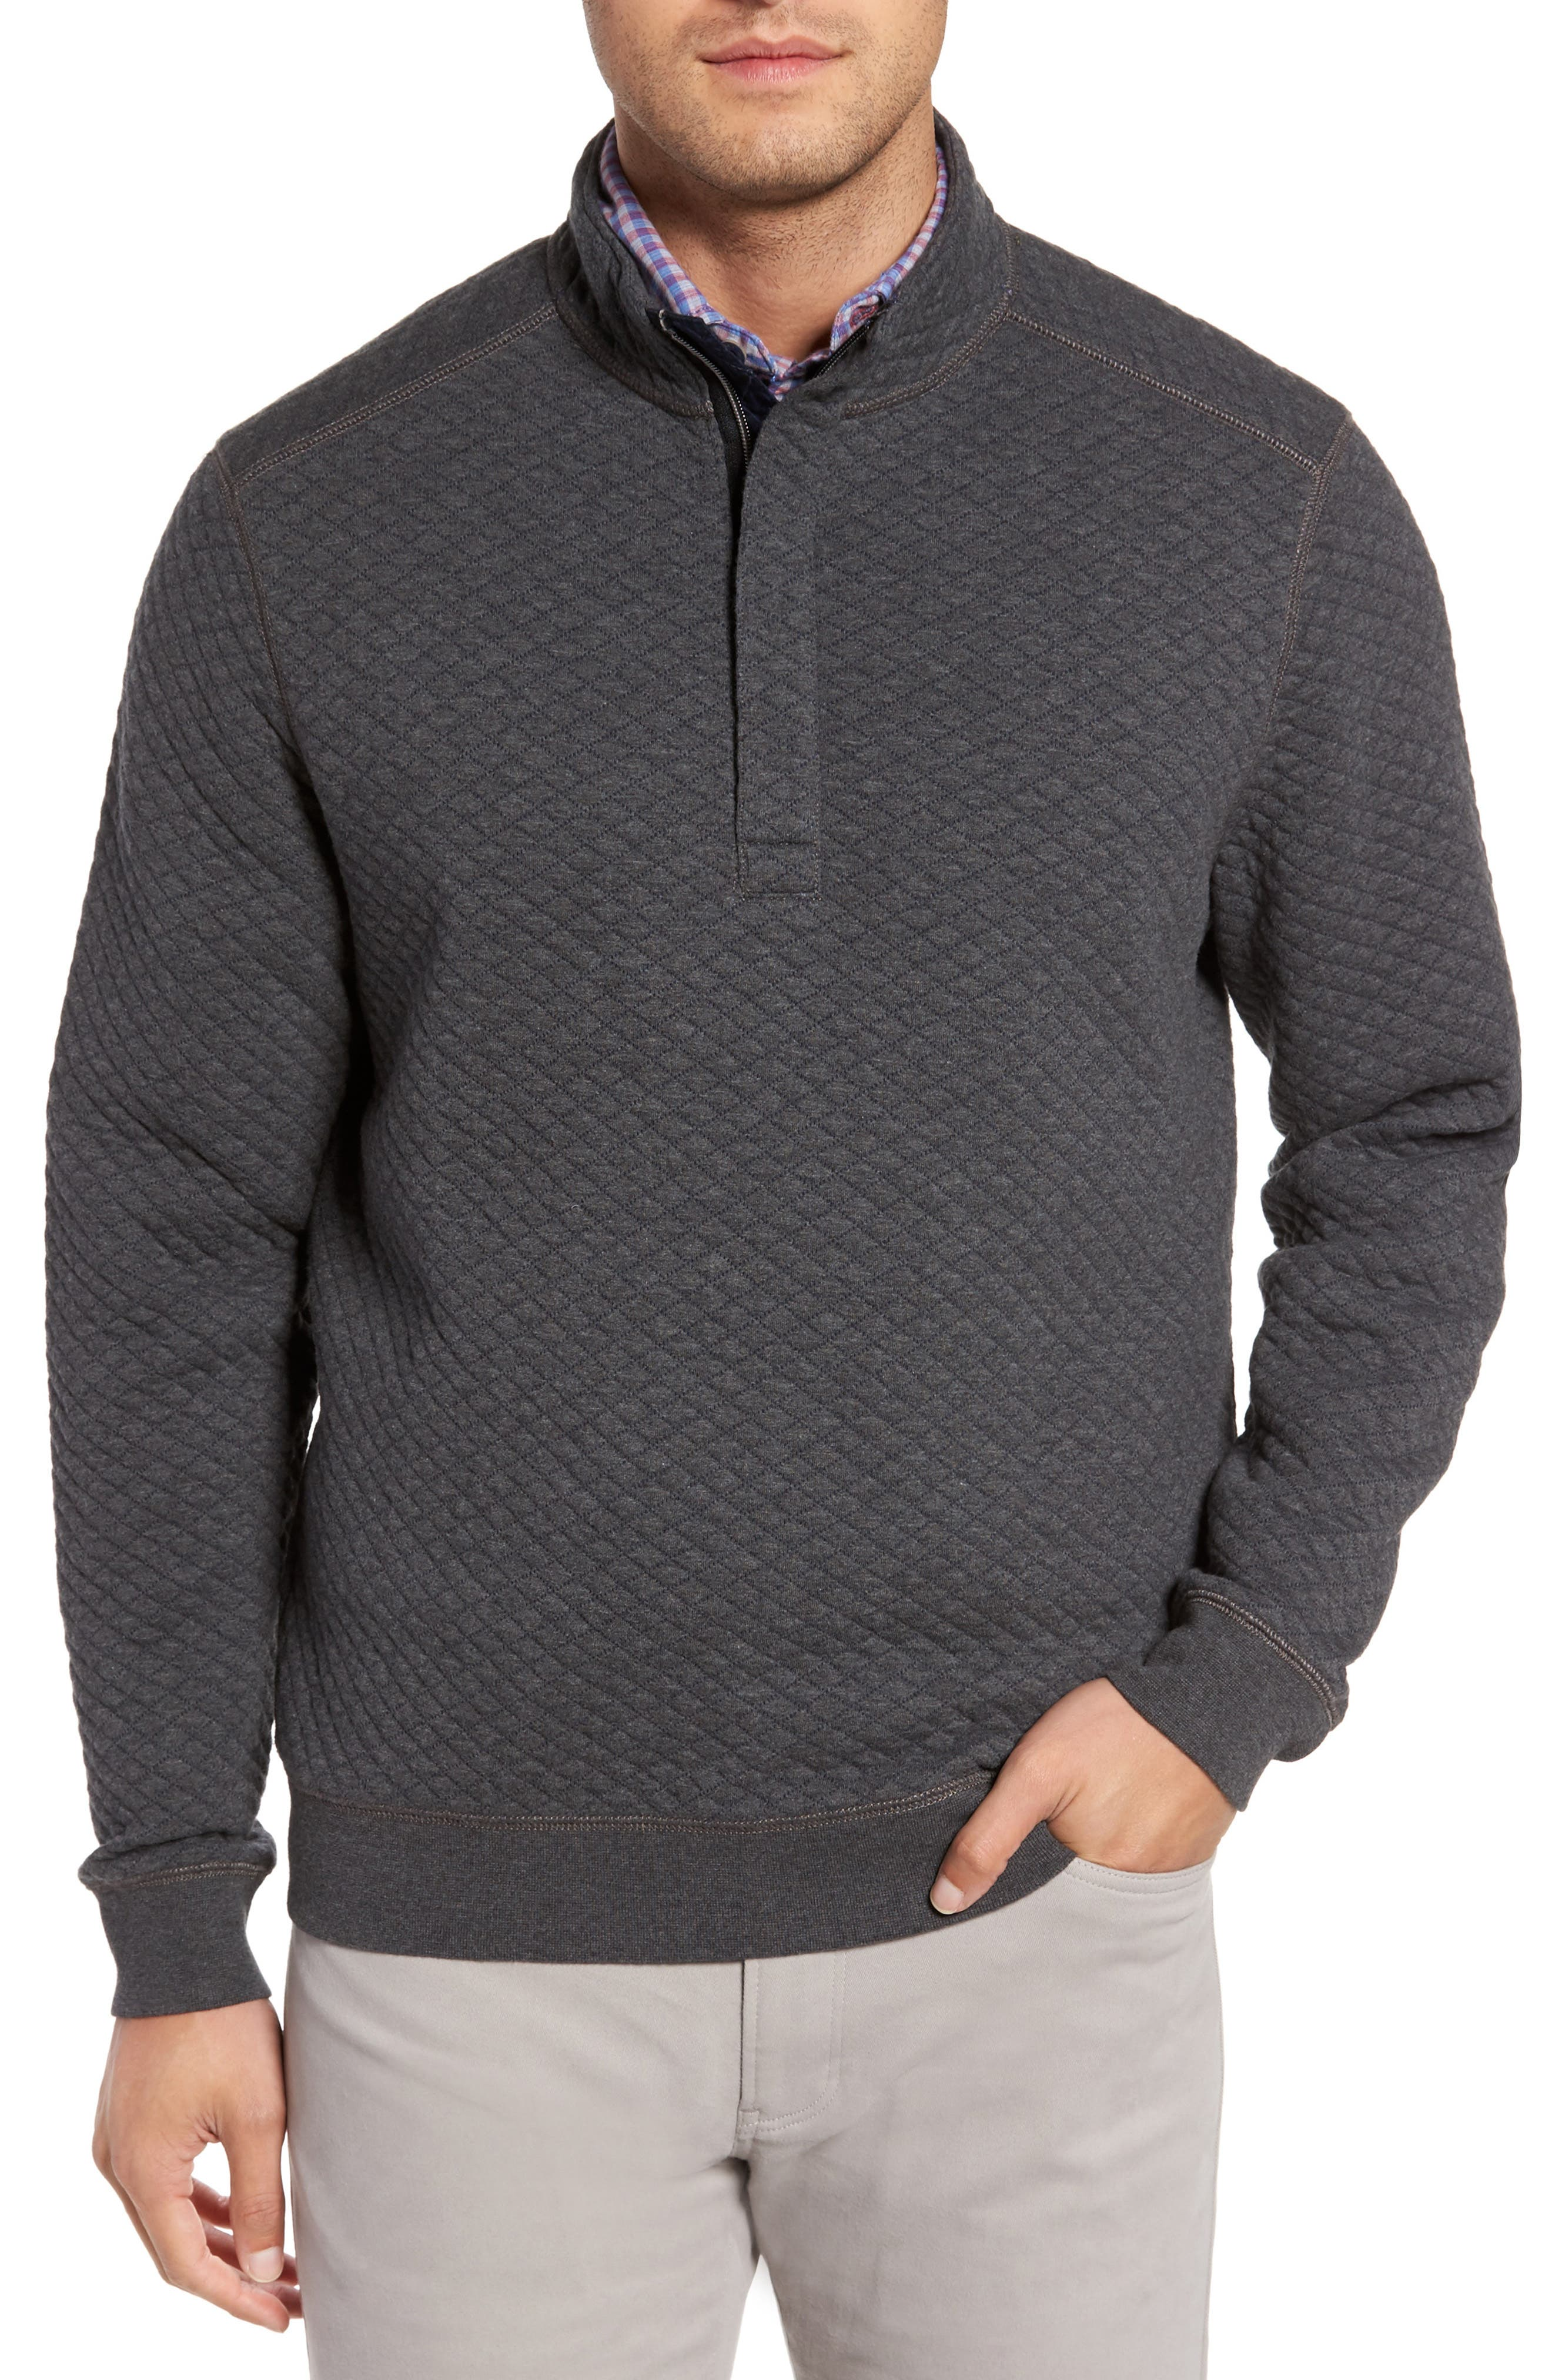 Quiltessential Standard Fit Quarter Zip Pullover,                         Main,                         color, Charcoal Heather